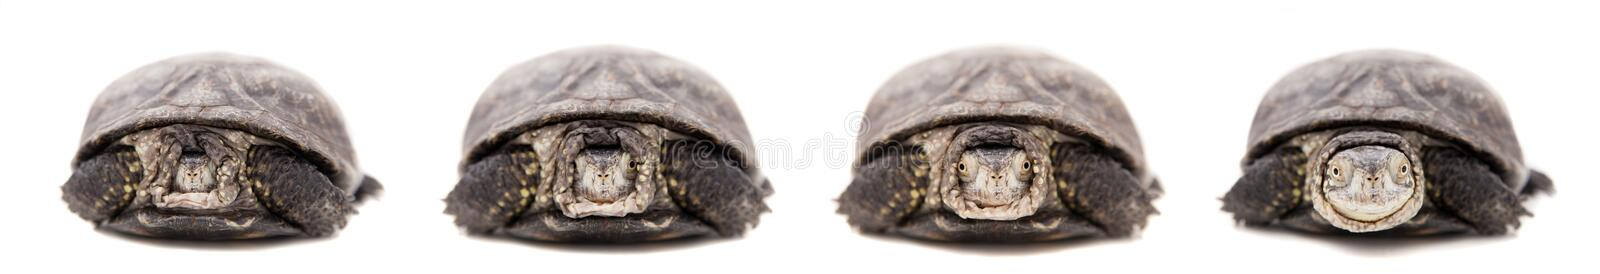 Download European Pond Terrapin On White Stock Photo - Image of herpetology, brown: 42180672